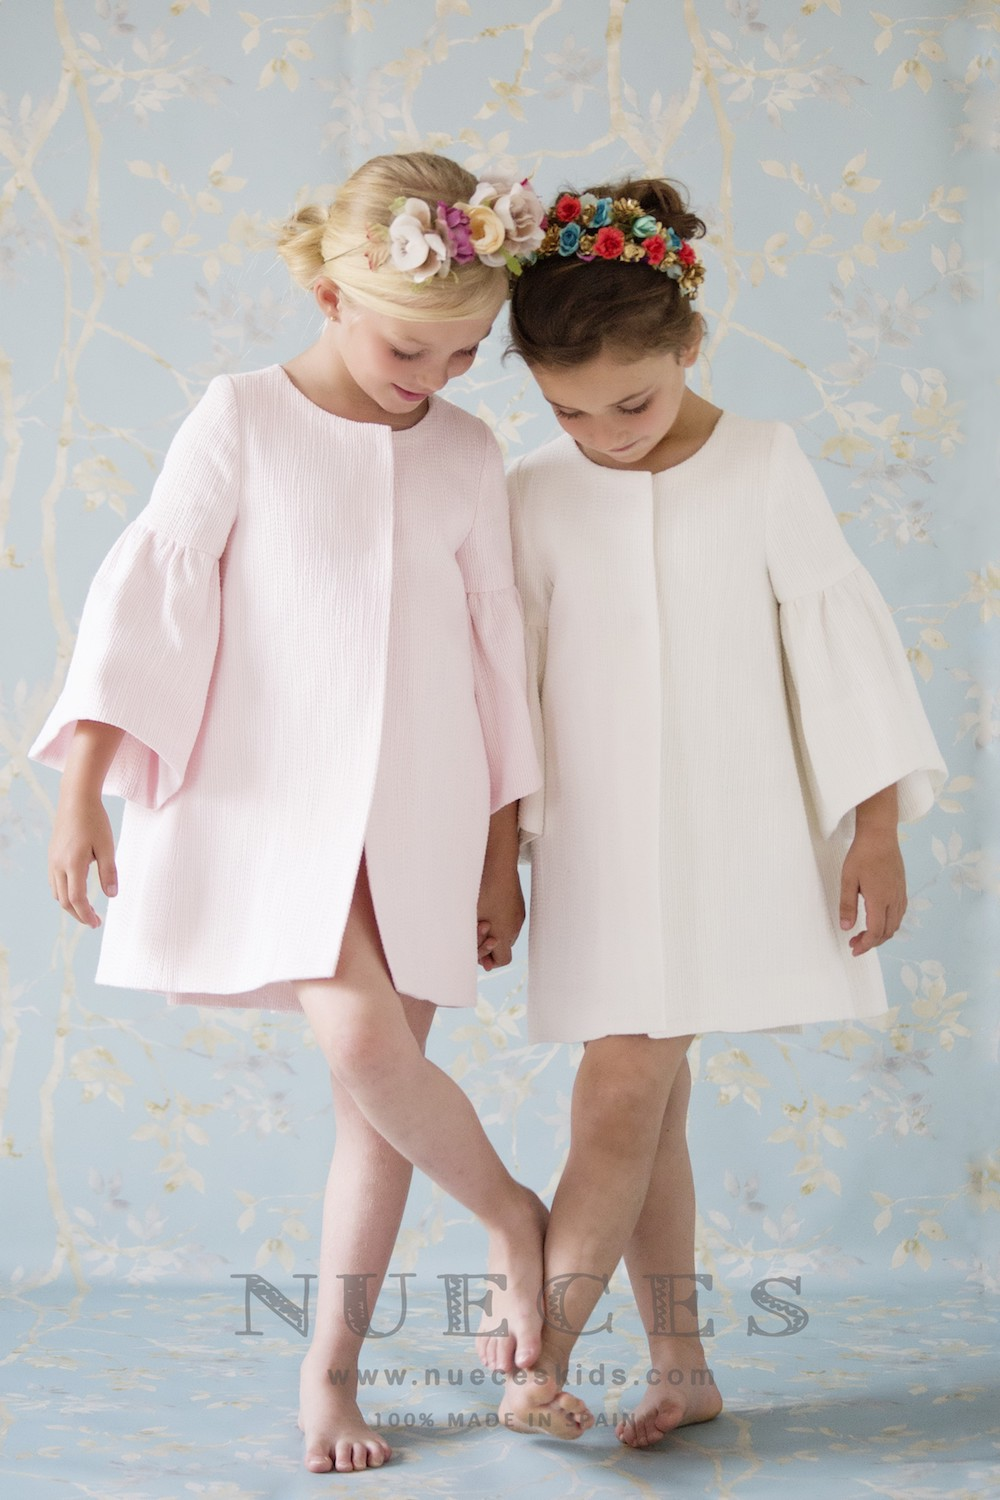 Nueces kids moda infantil